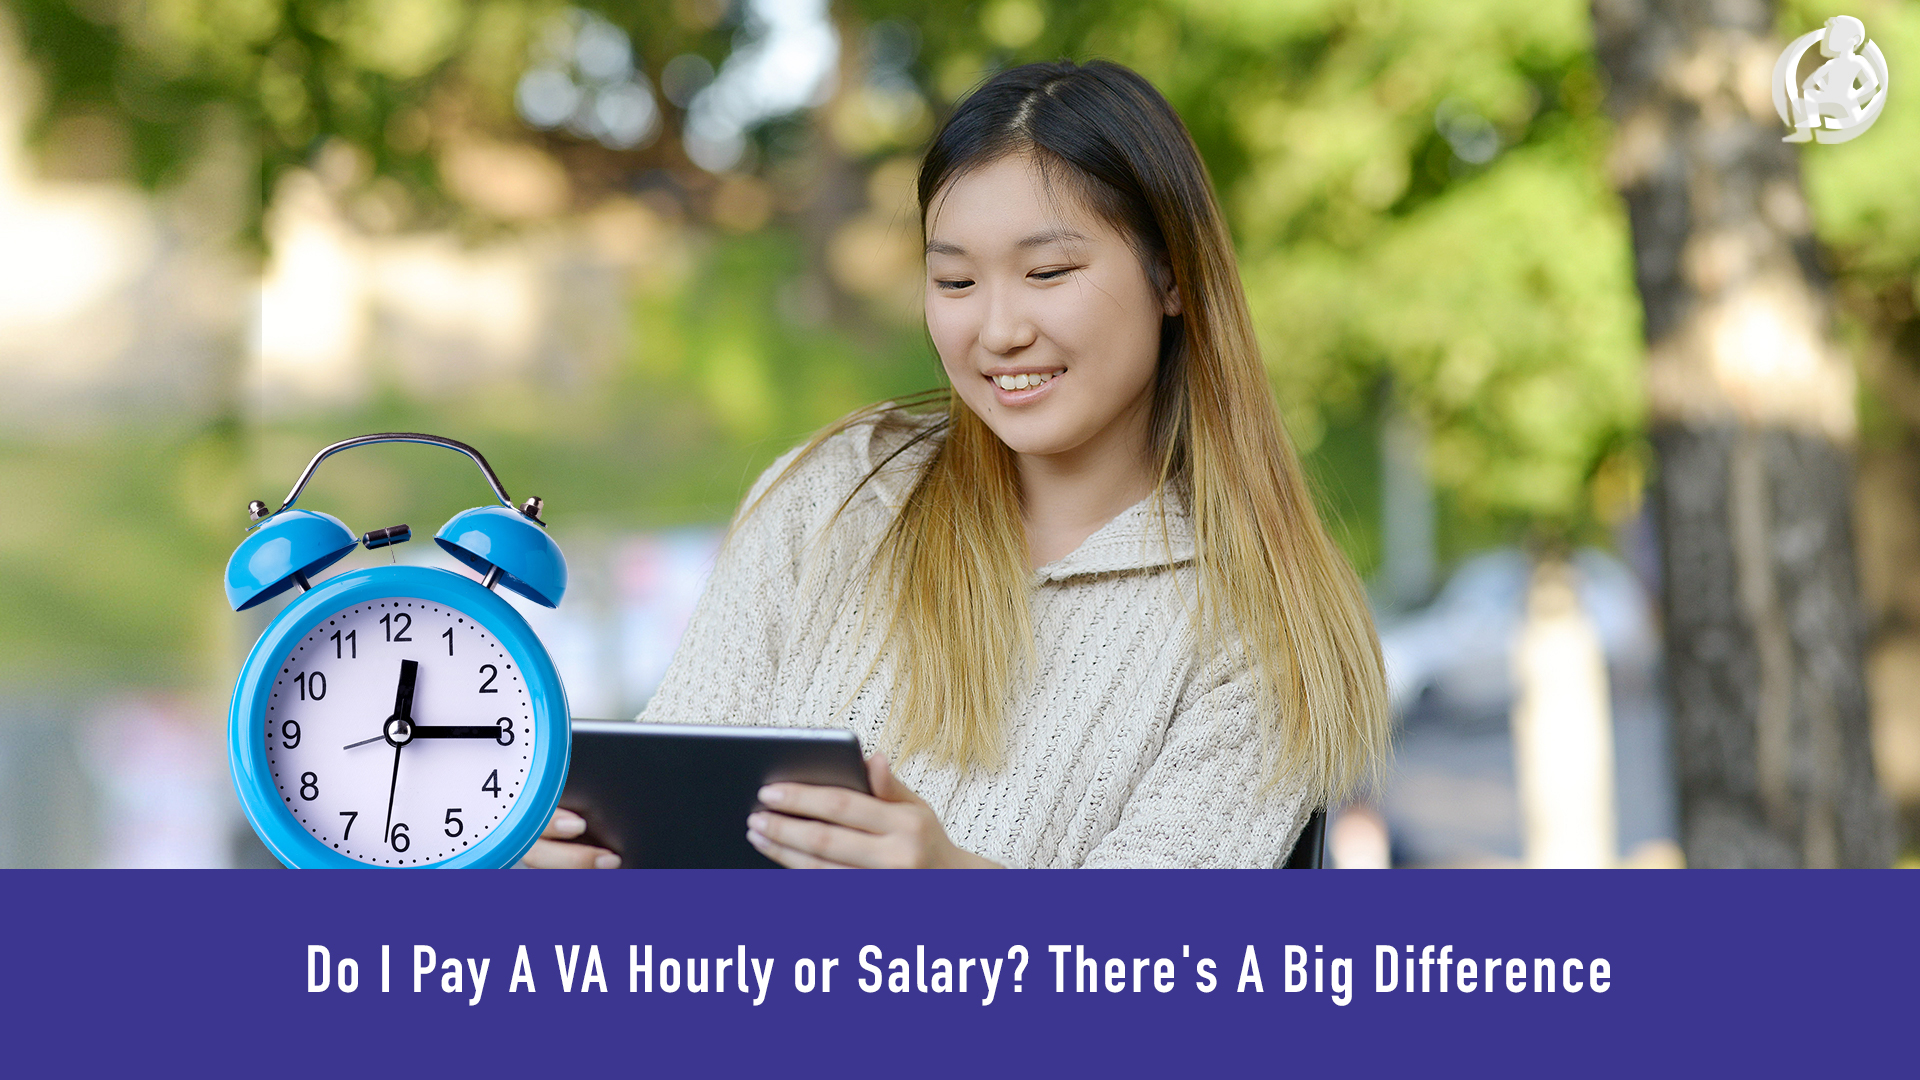 Do I Pay A VA Hourly or Salary? There's A Big Difference – Practical Advice